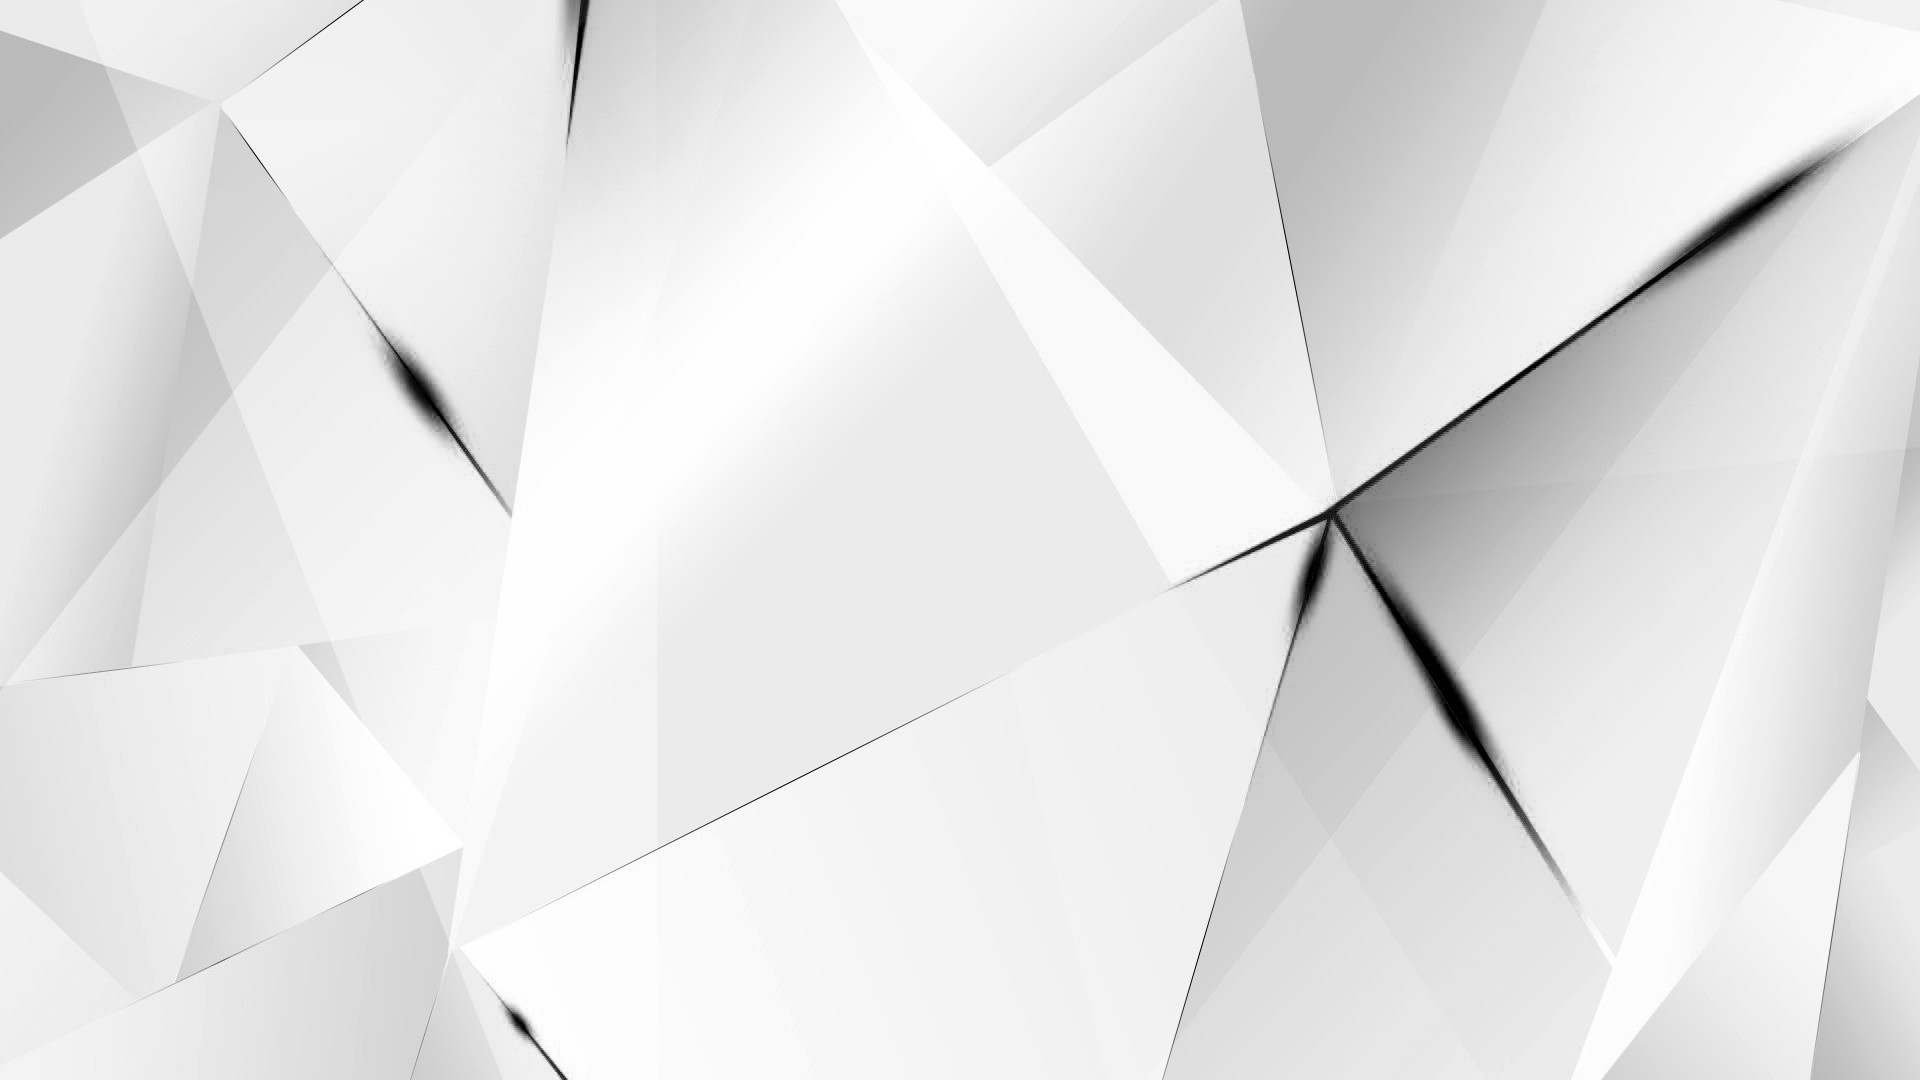 Solid White Download Wallpaper